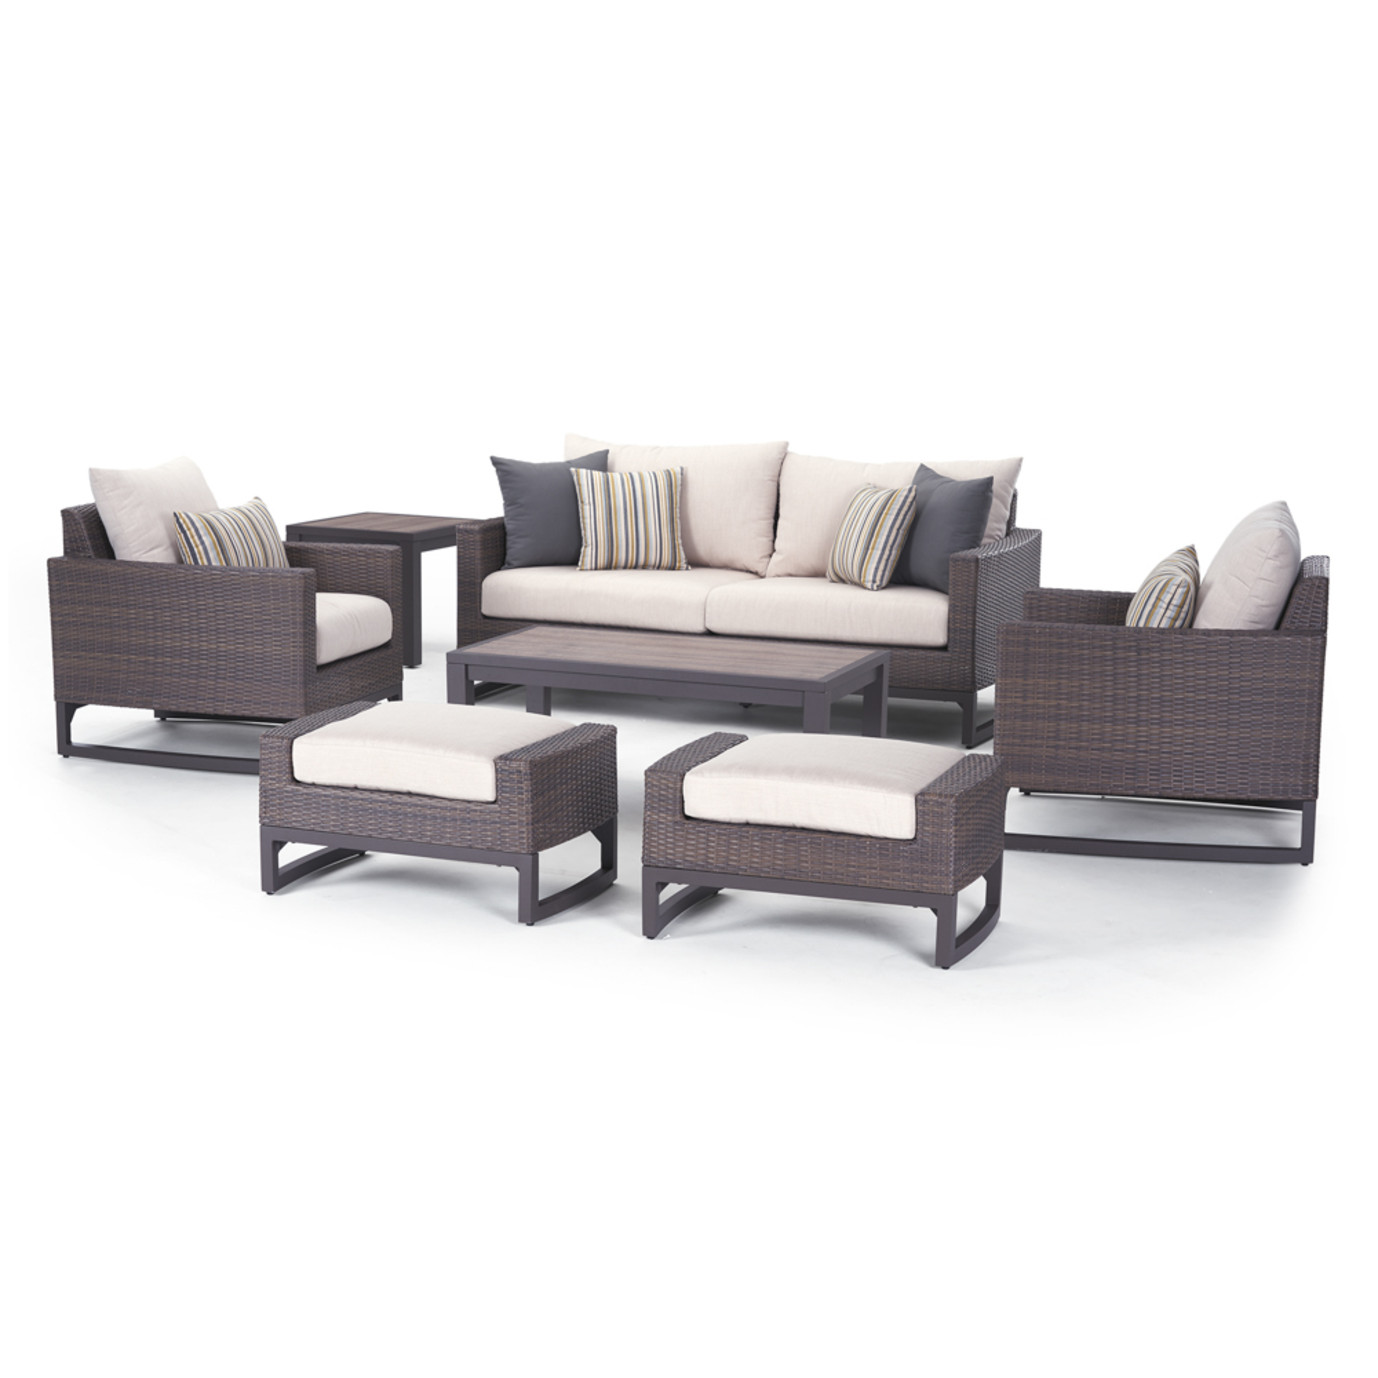 Milea 7 Piece Seating Set - Natural Beige